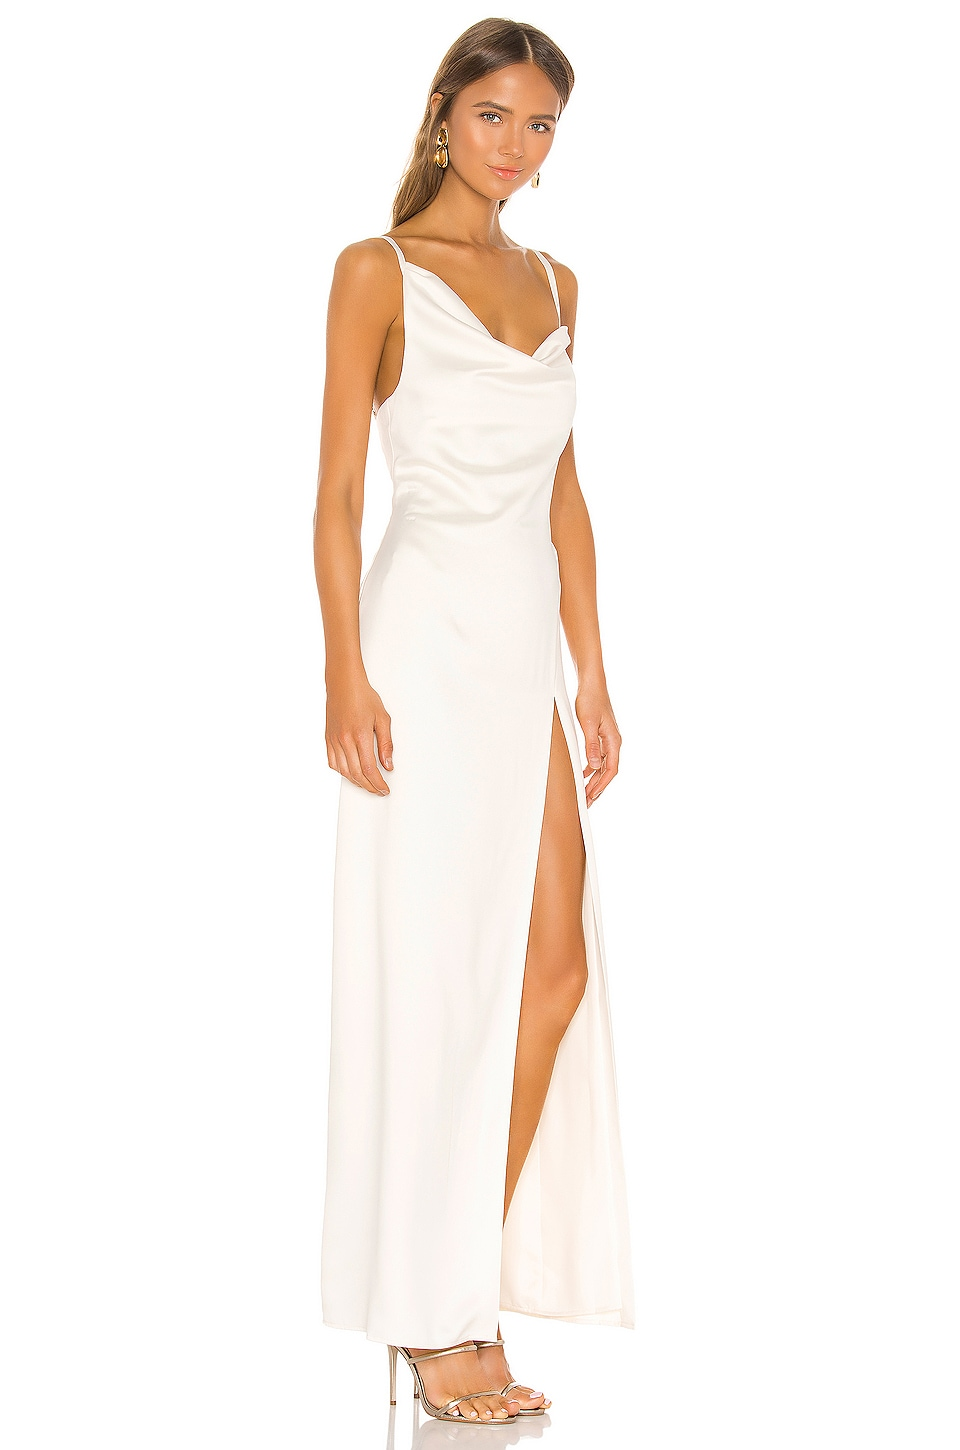 Reyna Maxi Dress, view 2, click to view large image.